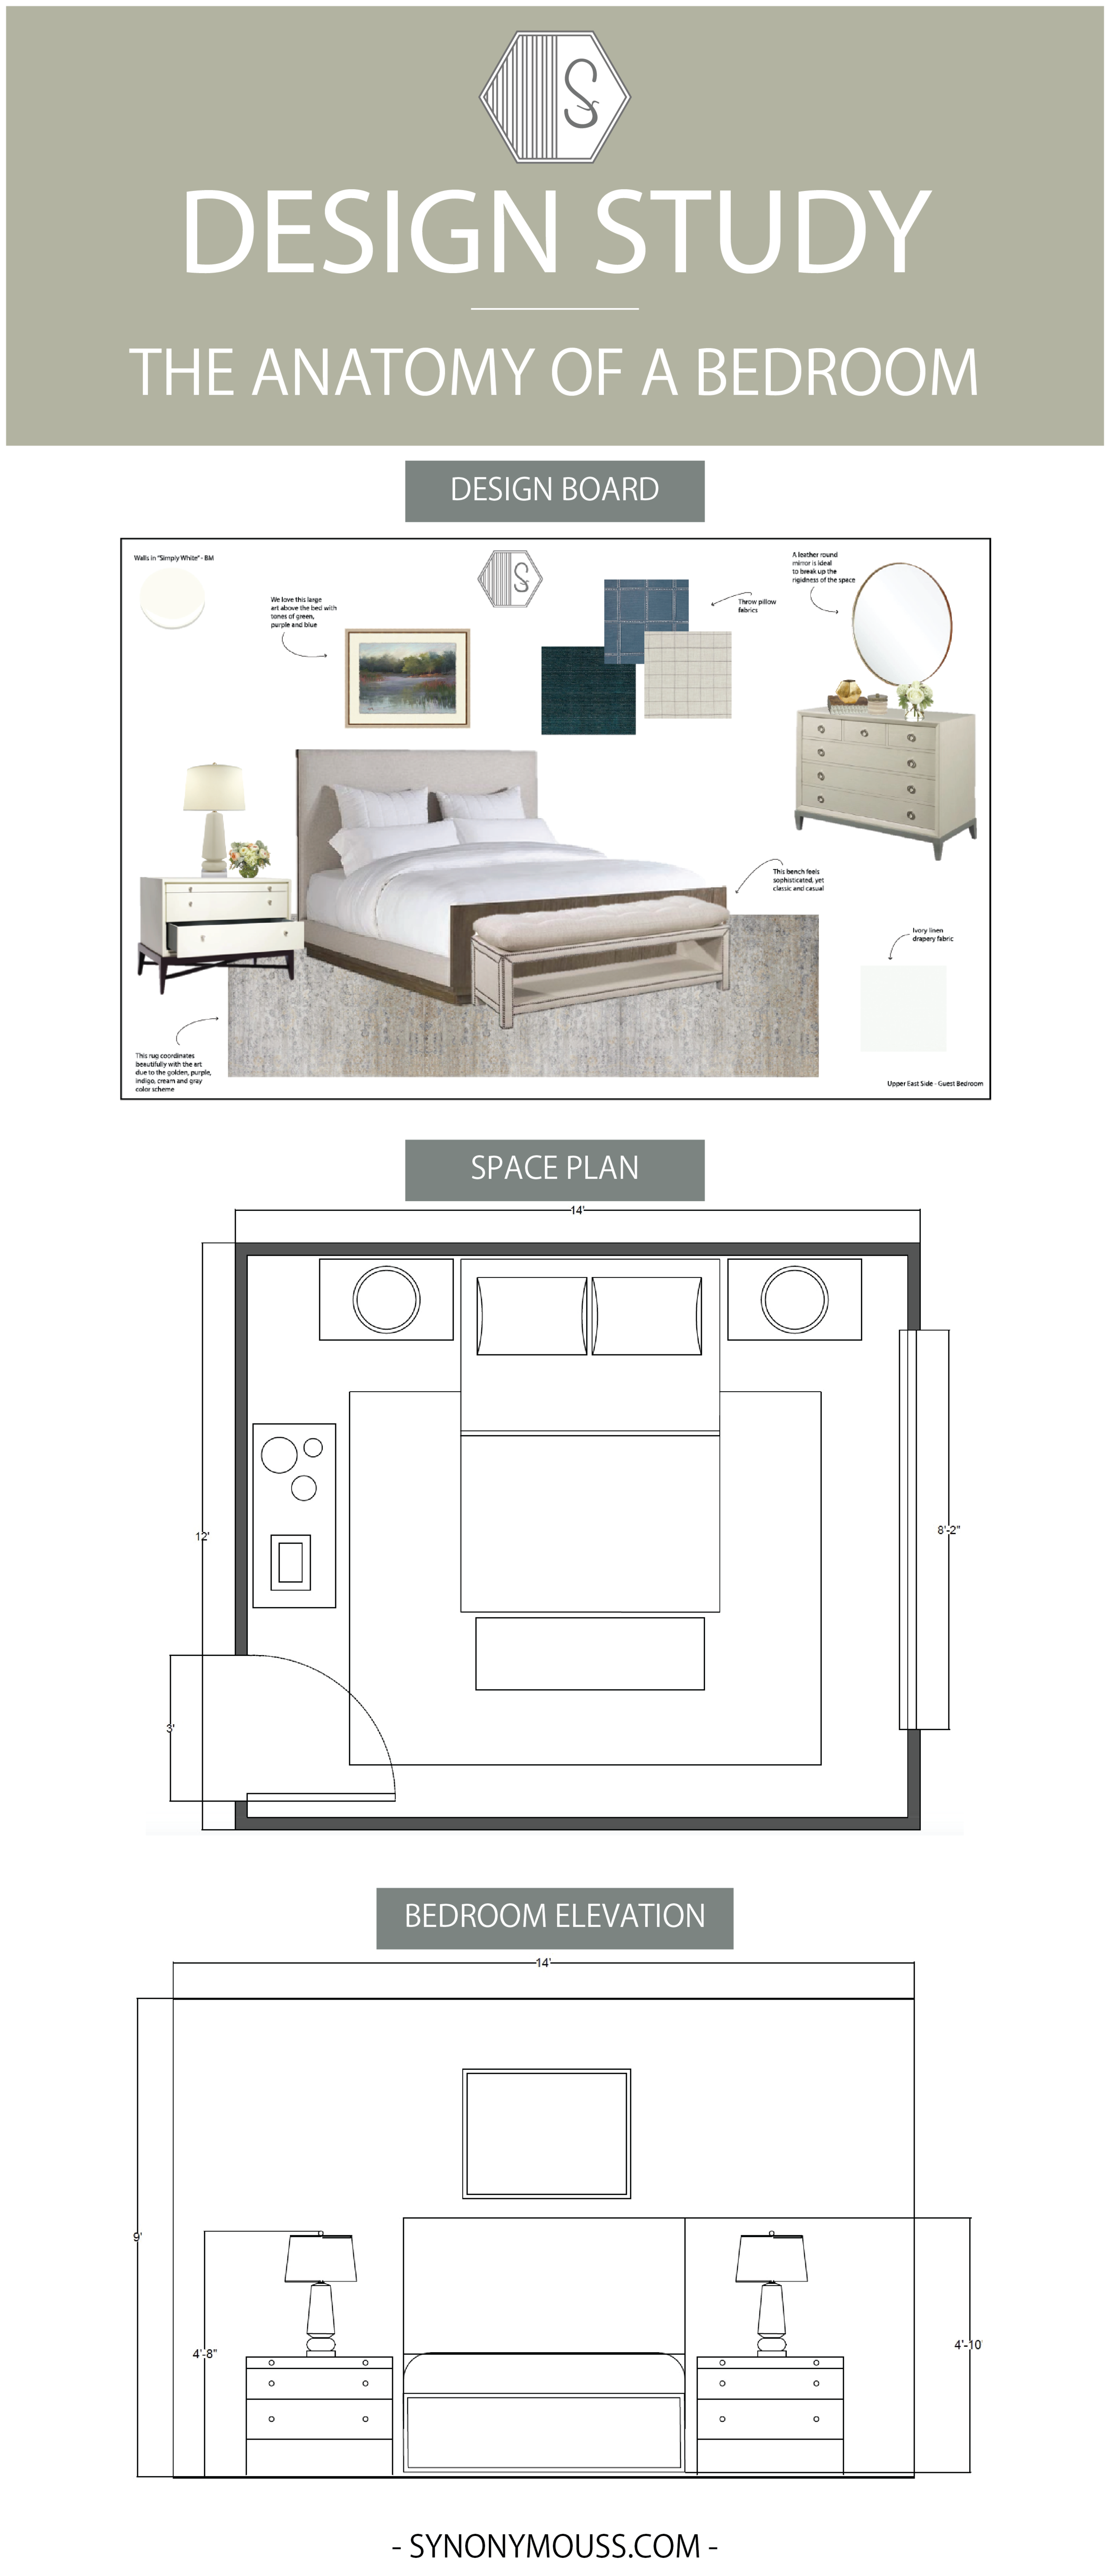 Design Study: Anatomy of a Bedroom - By: Synonymous